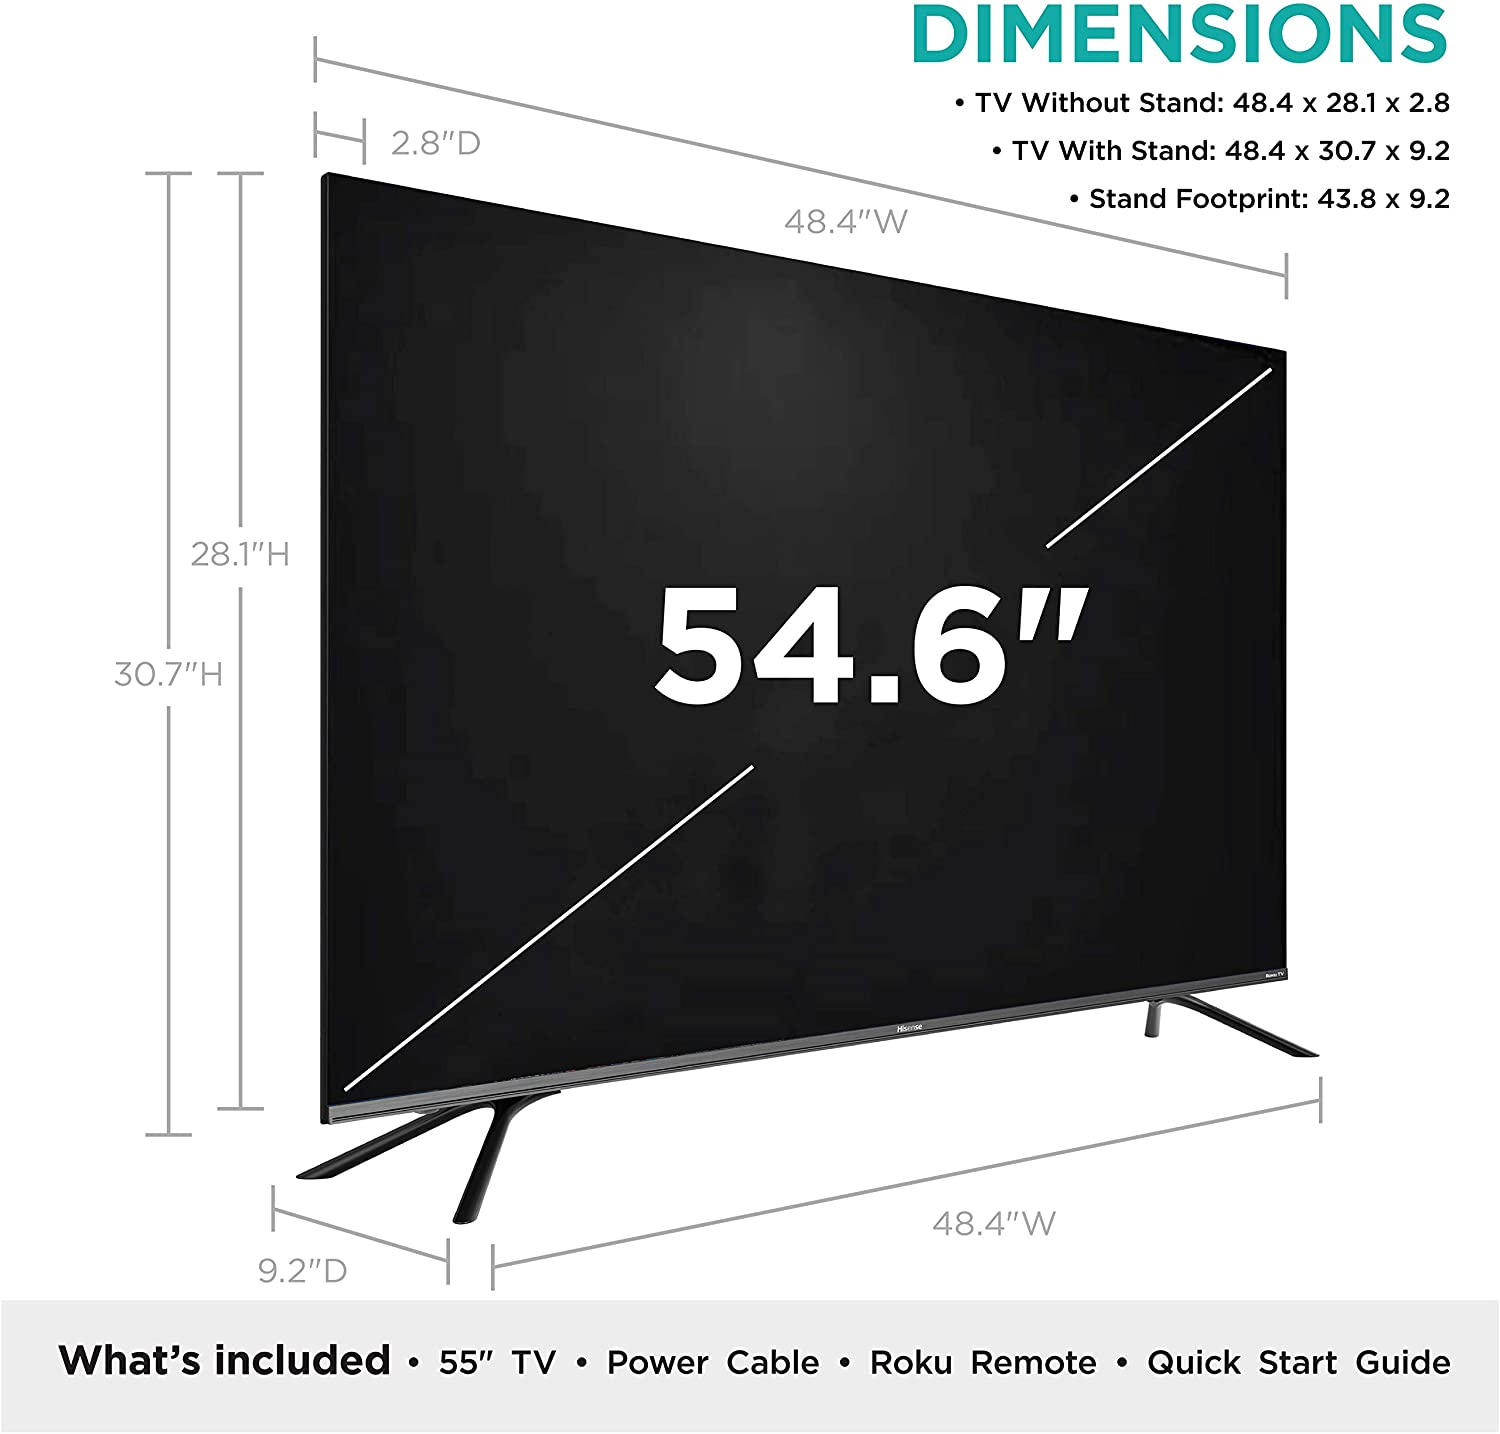 Hisense 55-Inch Class R8 Series Dolby Vision & Atmos 4K ULED Roku Smart TV with Alexa Compatibility and Voice Remote (55R8F, 2020 Model)